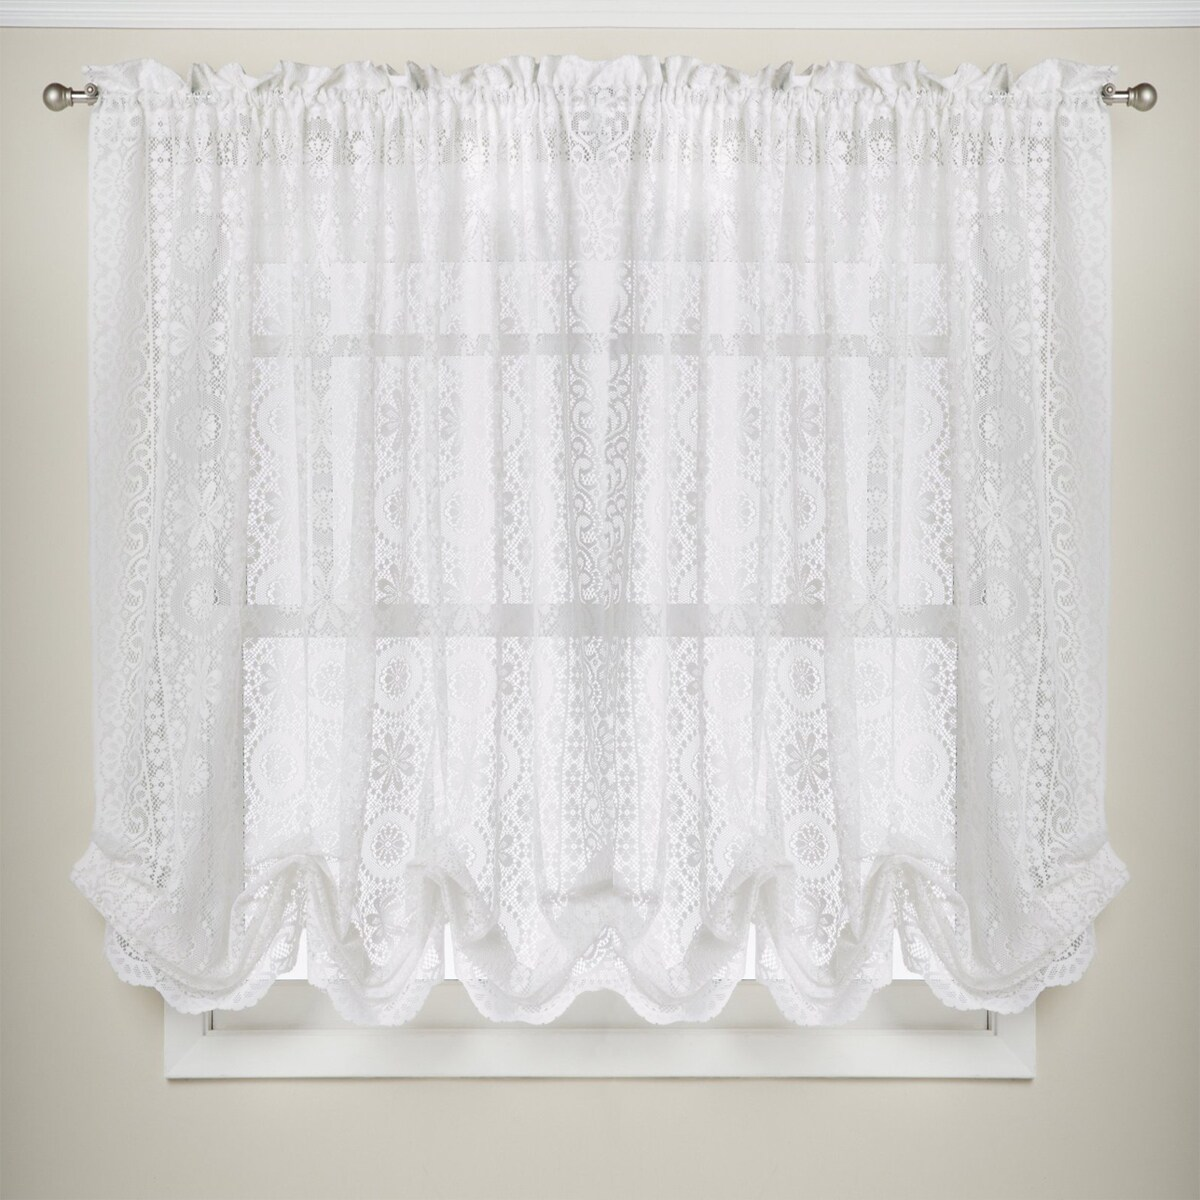 24 Inch Kitchen Curtains White Lace Luxurious Old World Style Kitchen Curtains Tiers Shade Or Valances